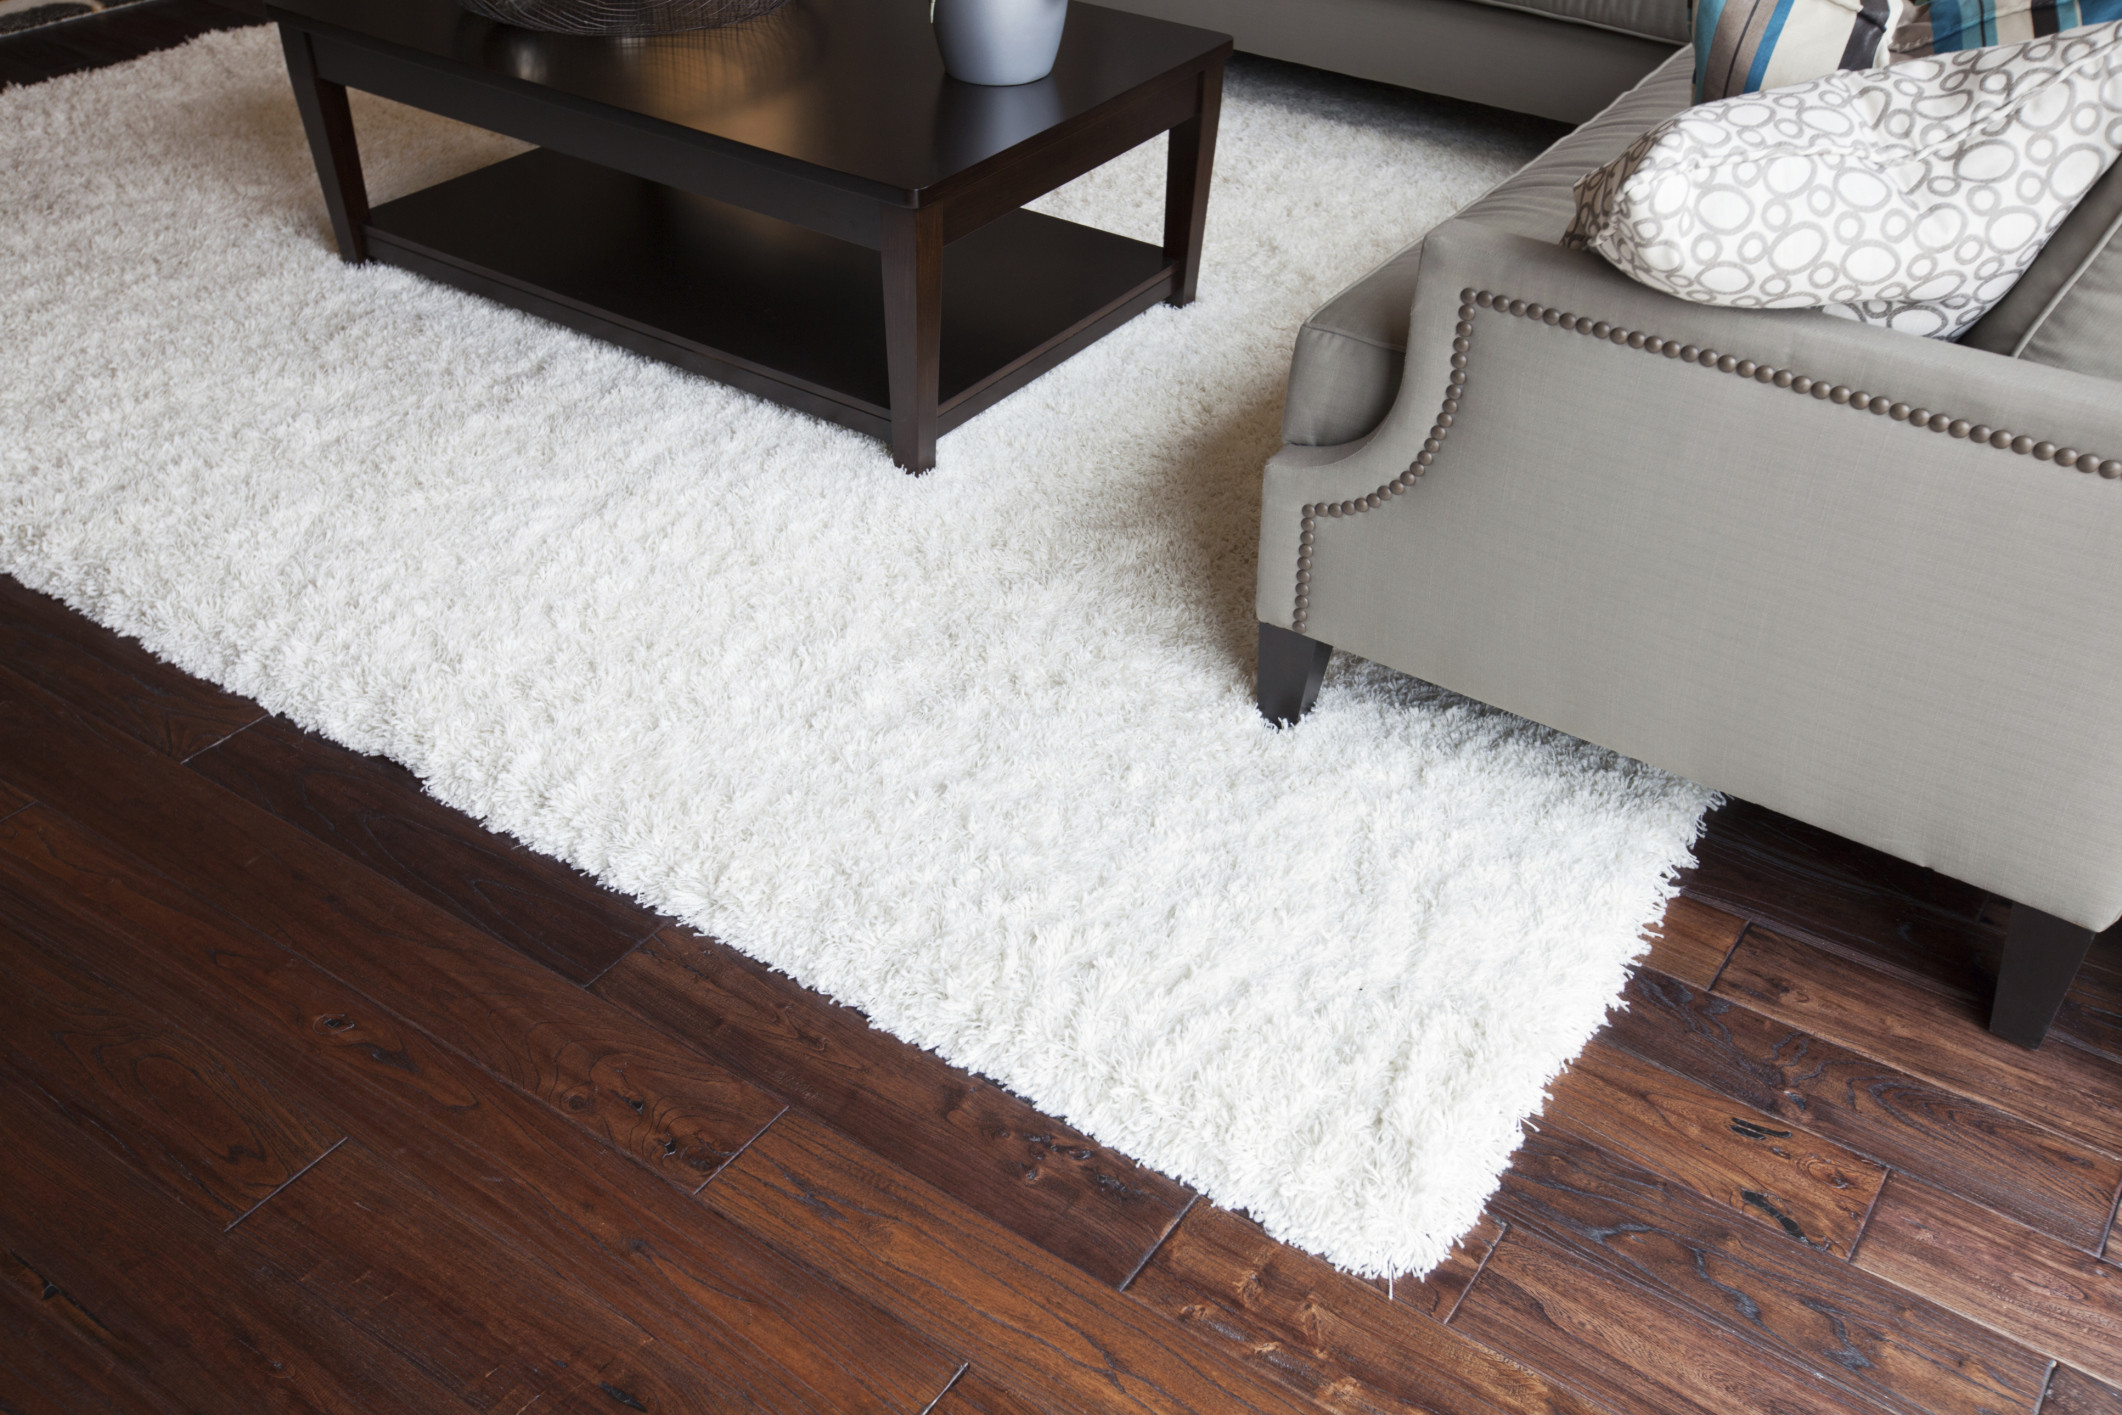 Rugs For Hardwood Floors In Kitchen 9 Things Youre Doing To Ruin Your Hardwood Floors Without Even